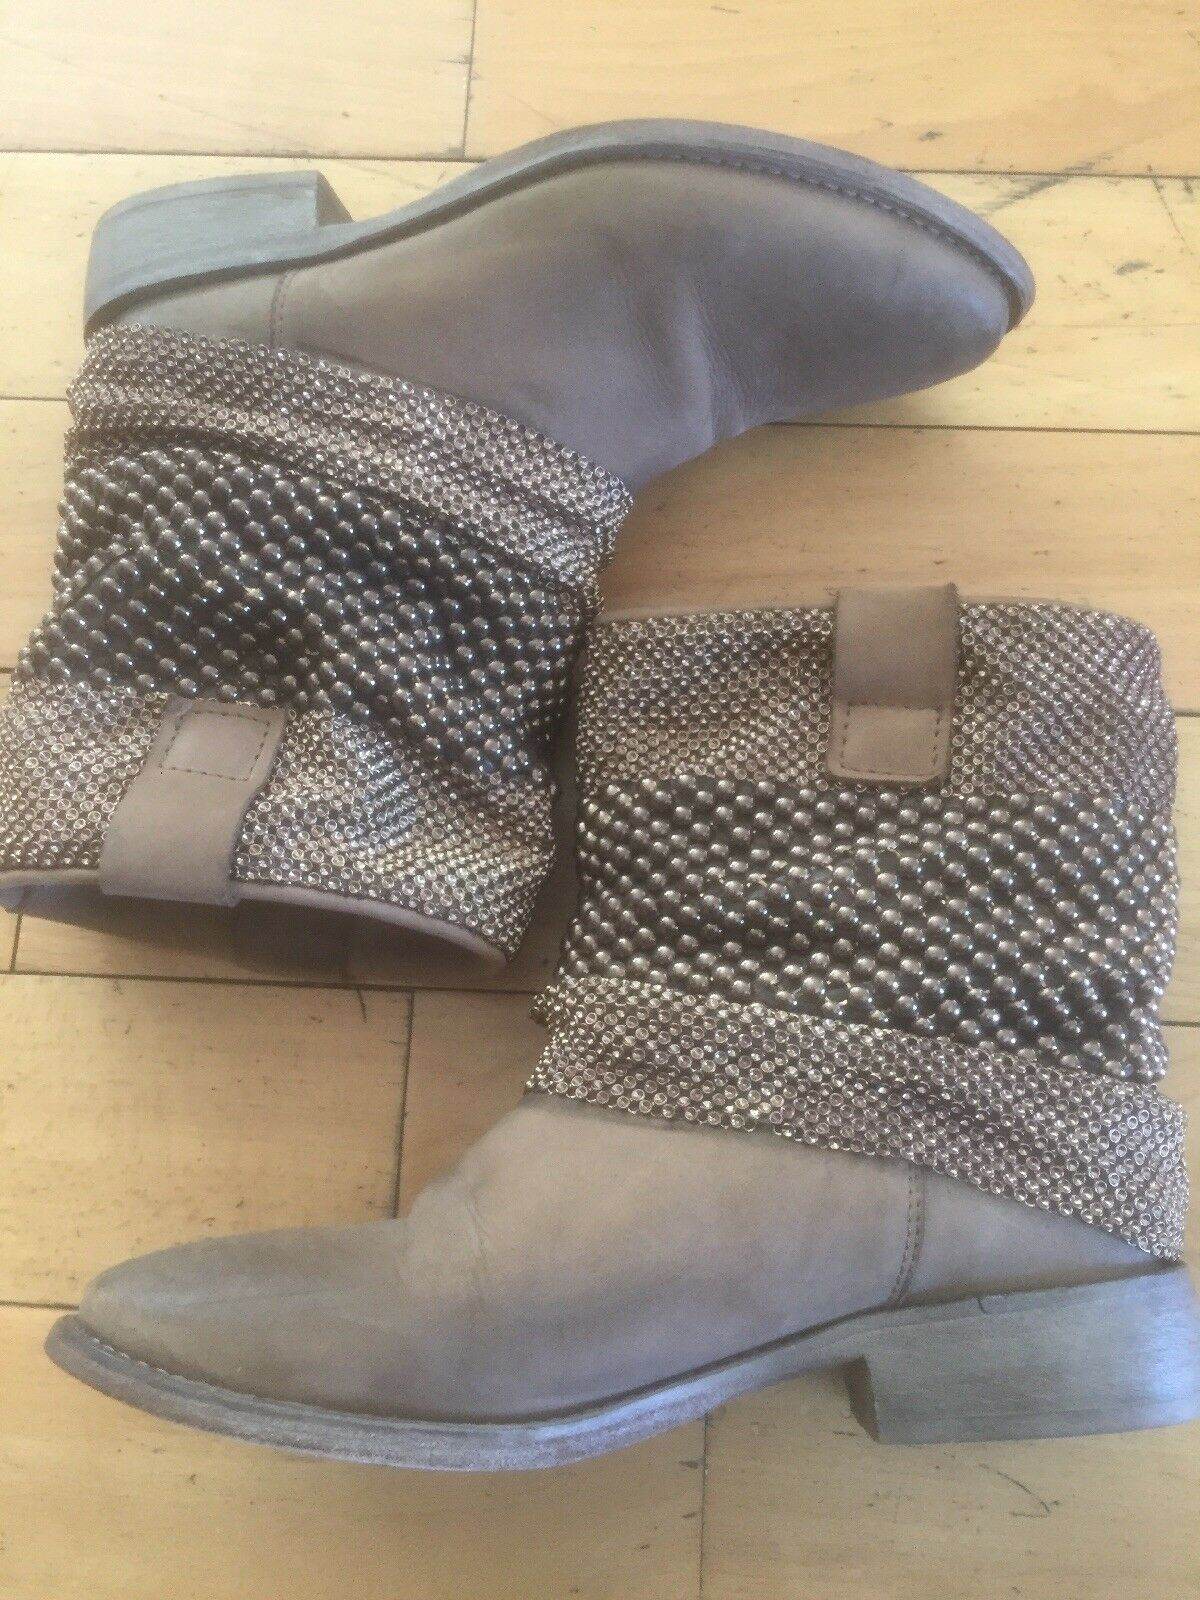 STRATEGIA Beige/Taupe Women's Booties Beads and Chains Size 5